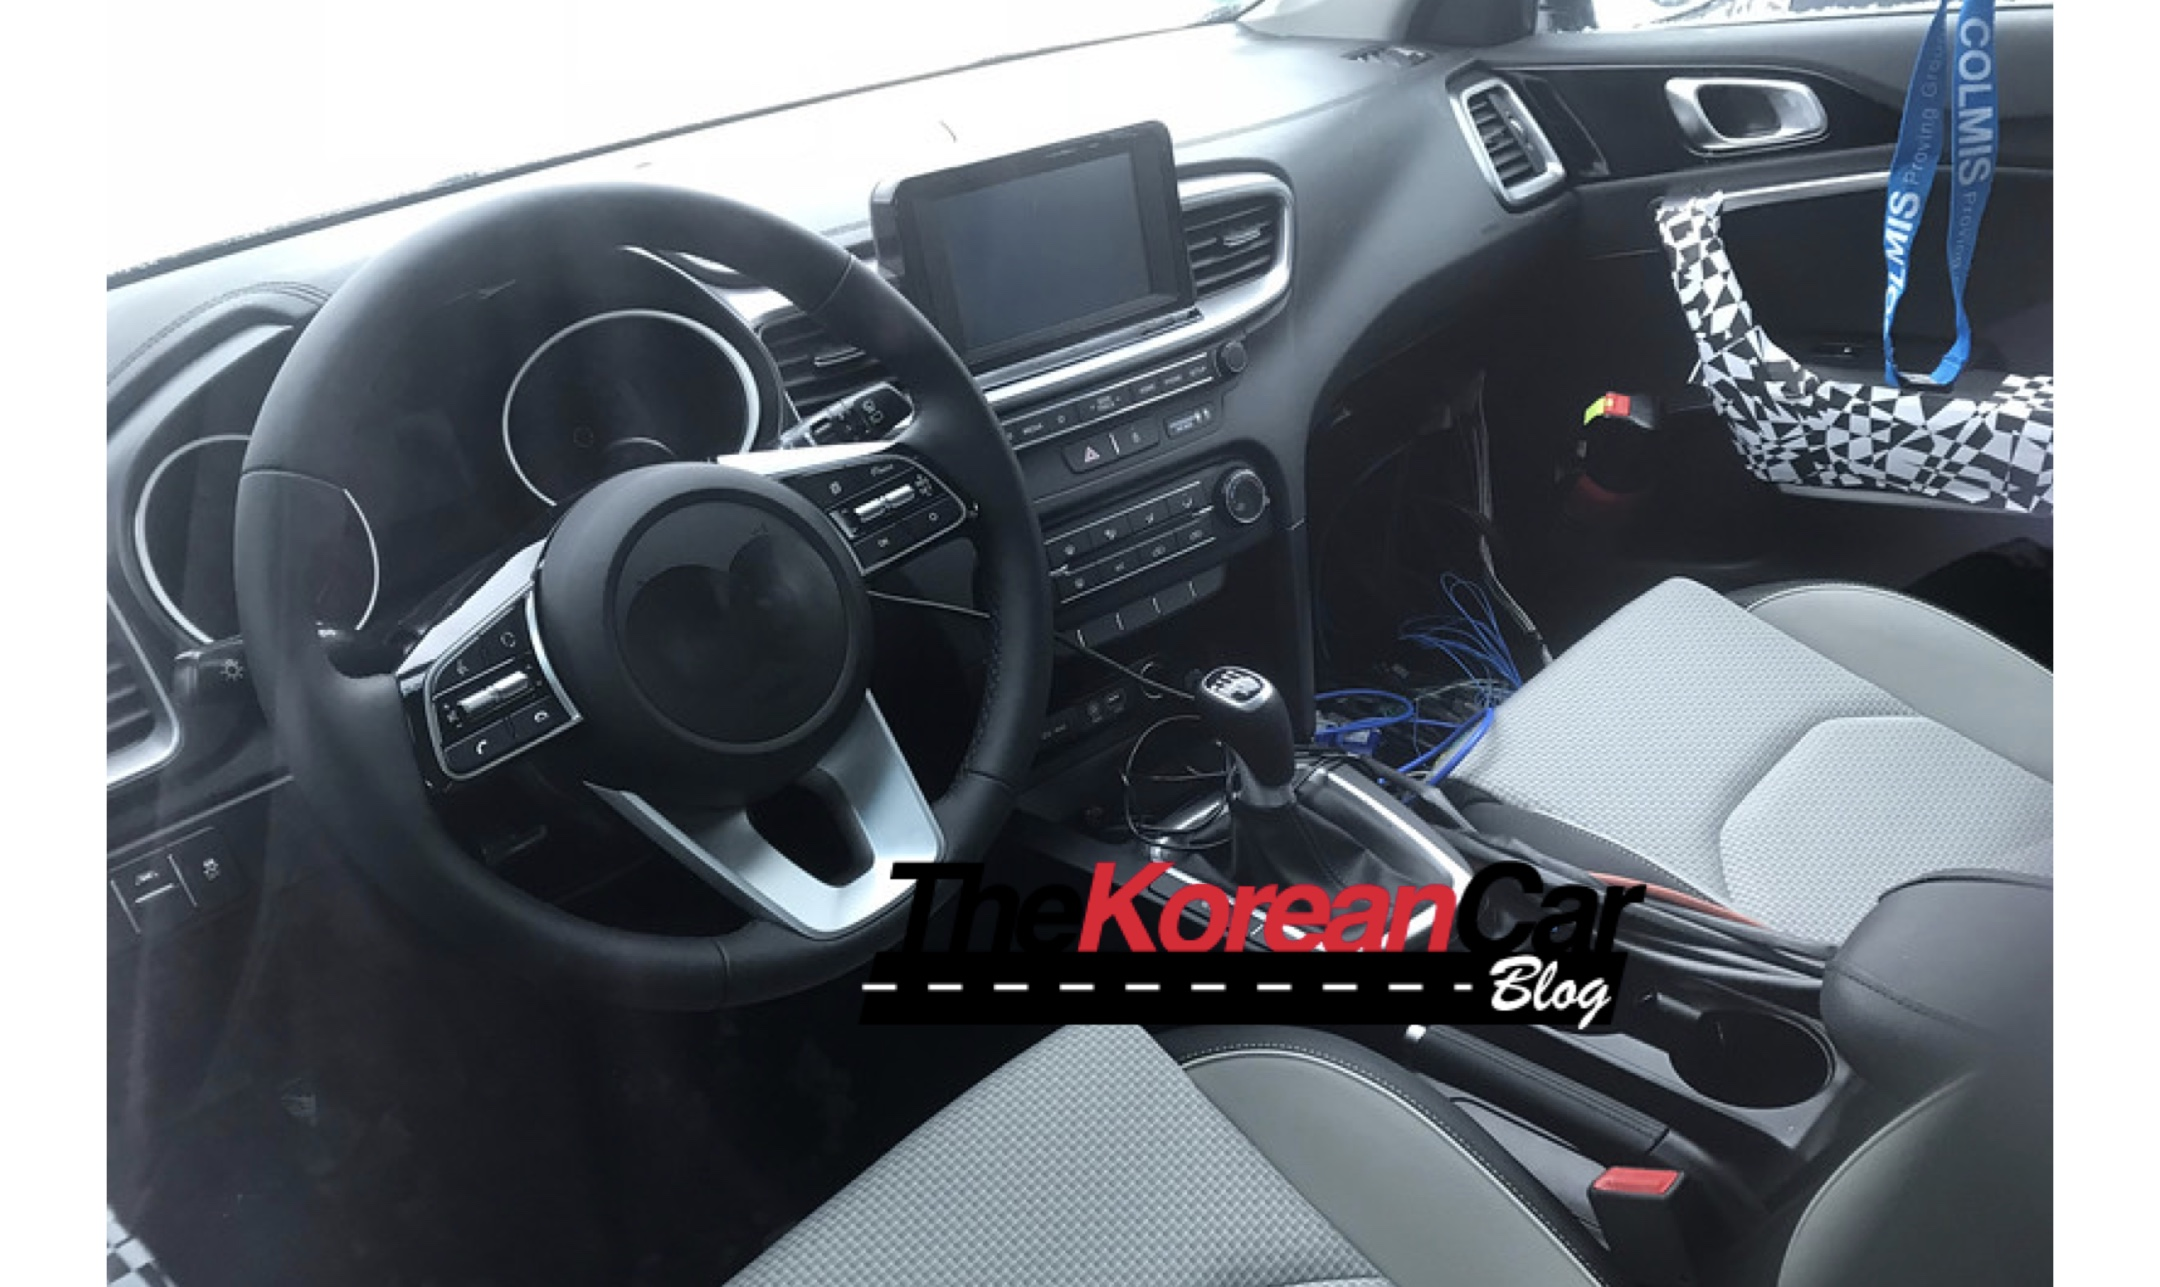 2018 Kia cee'd Interior Caught Undisguised